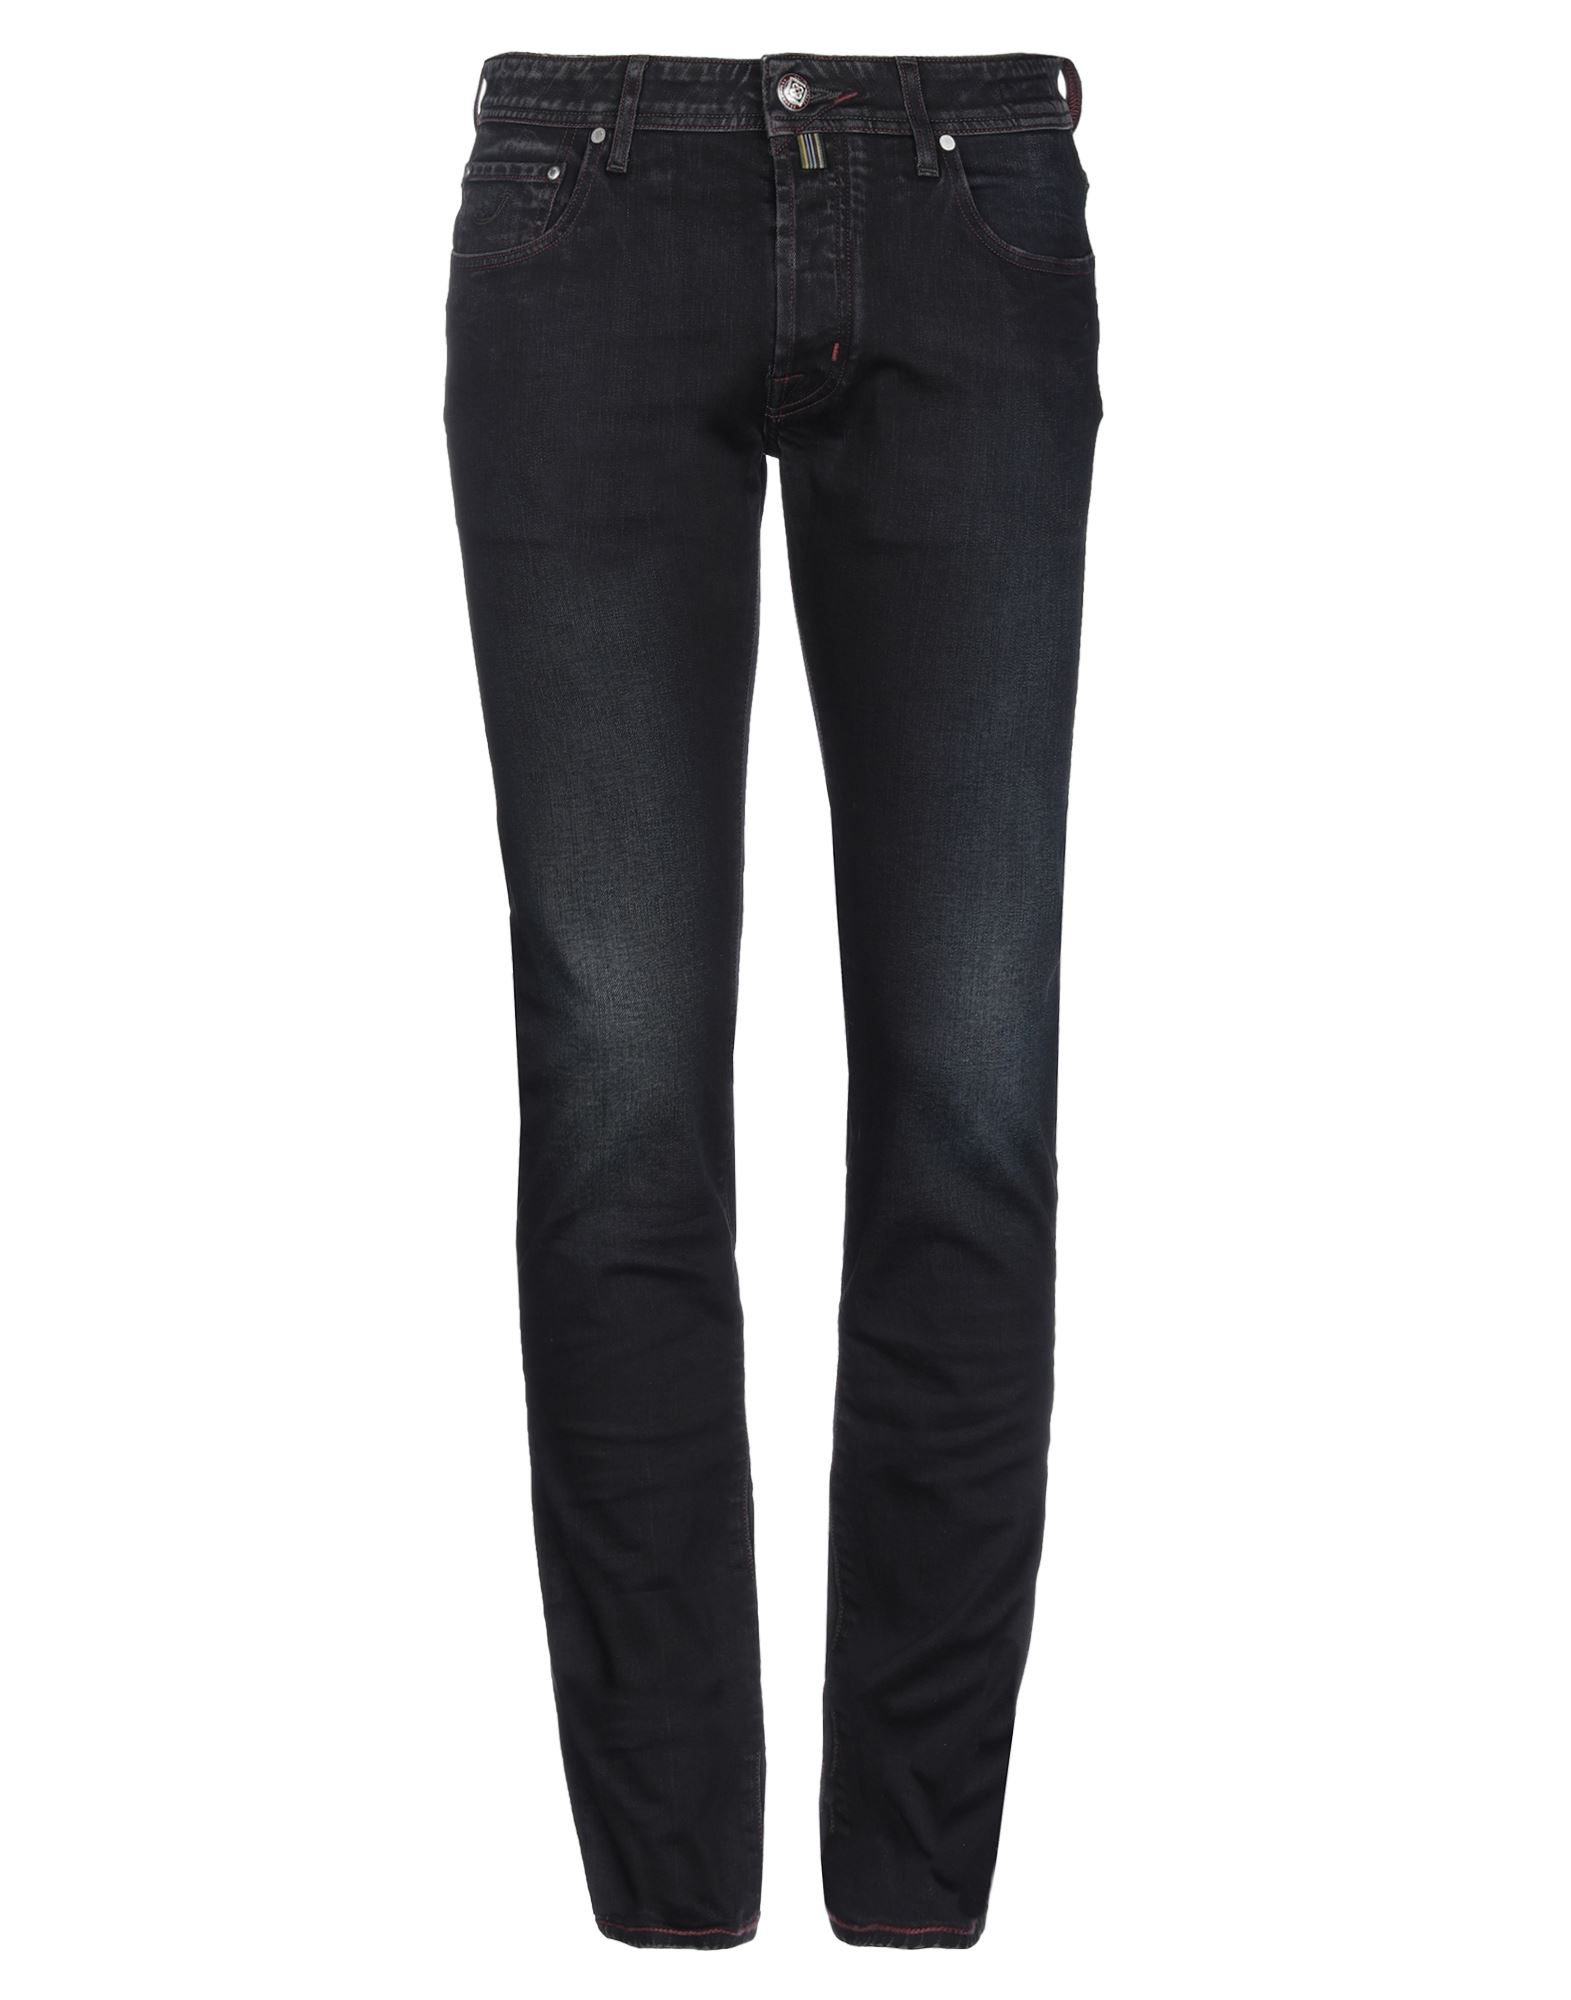 JACOB COHЁN Denim pants - Item 42819111